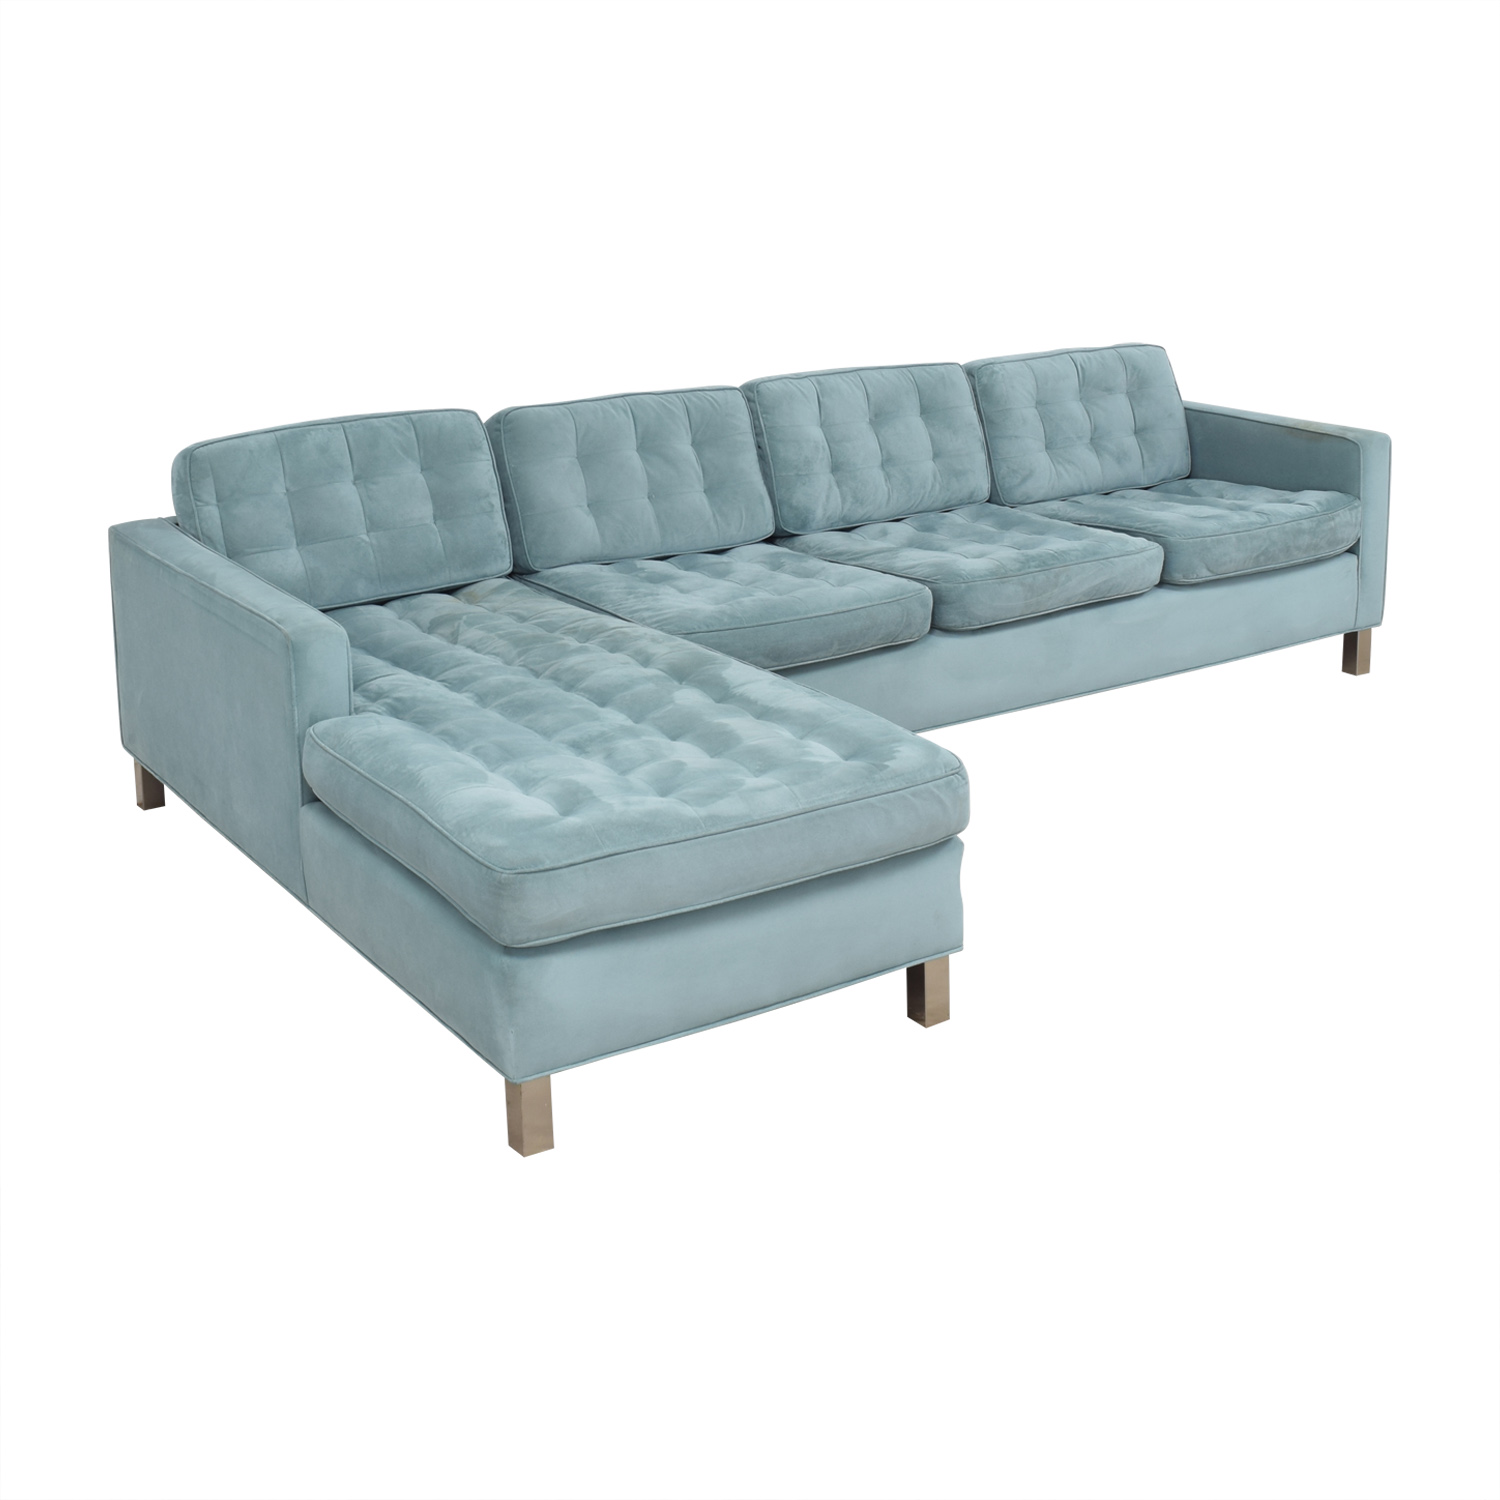 Dune Climate Sectional Sofa by Richard Shemtov sale